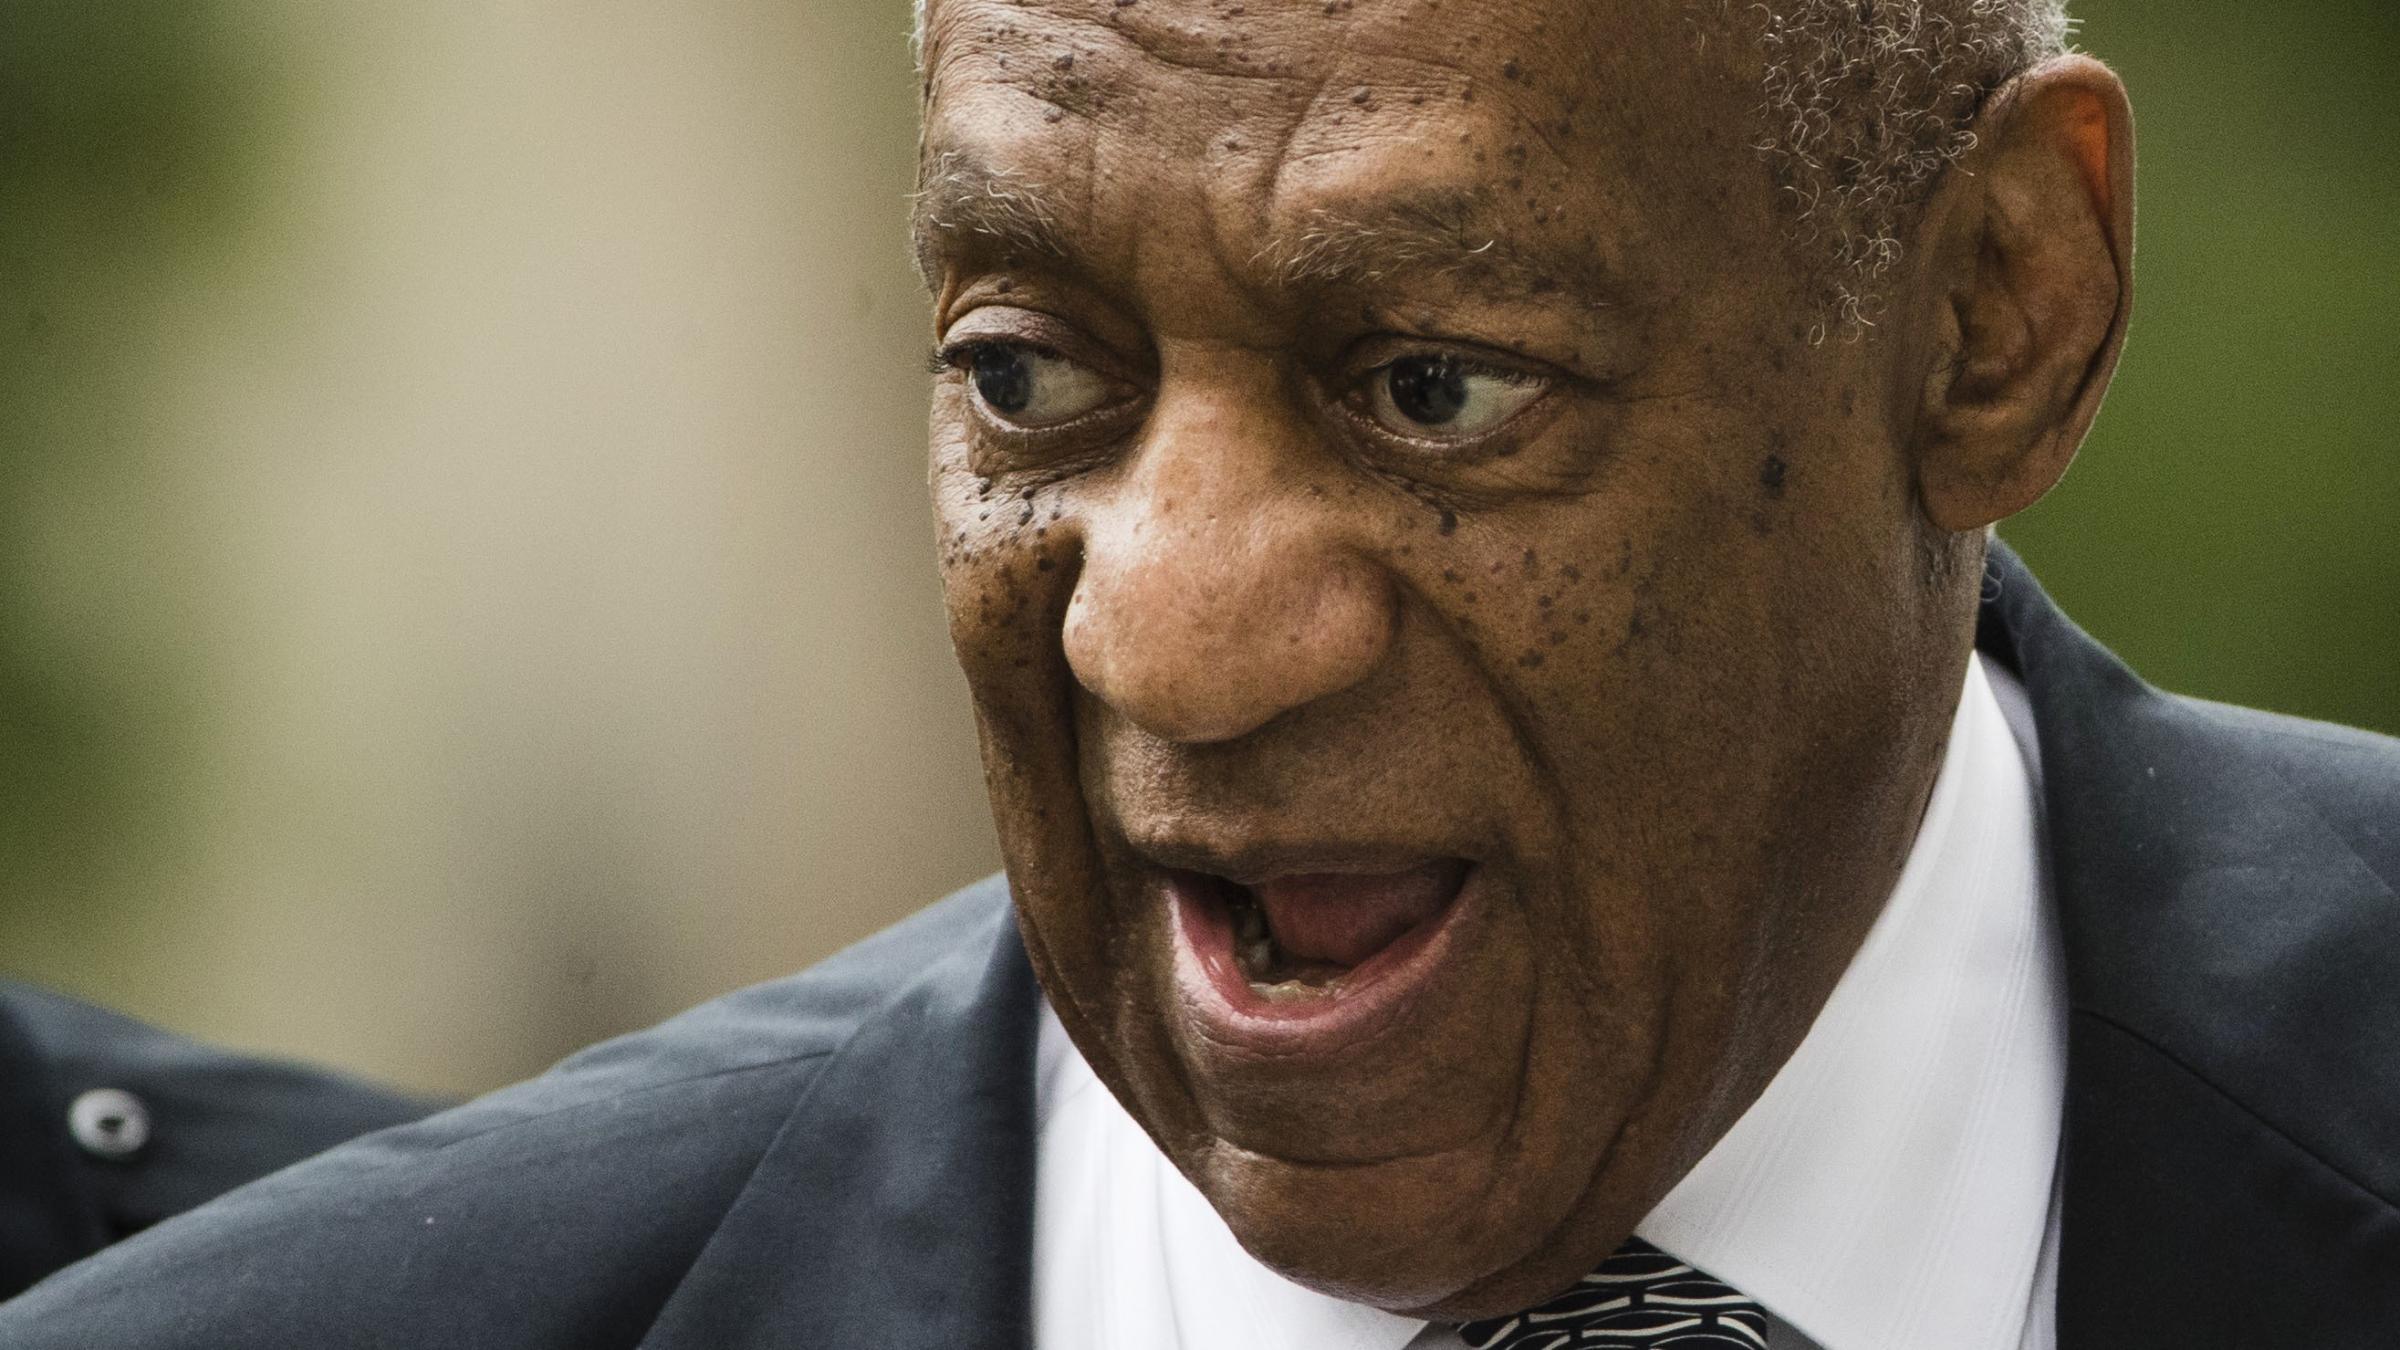 Cosby thanks supporters on Twitter as trial deliberations continue